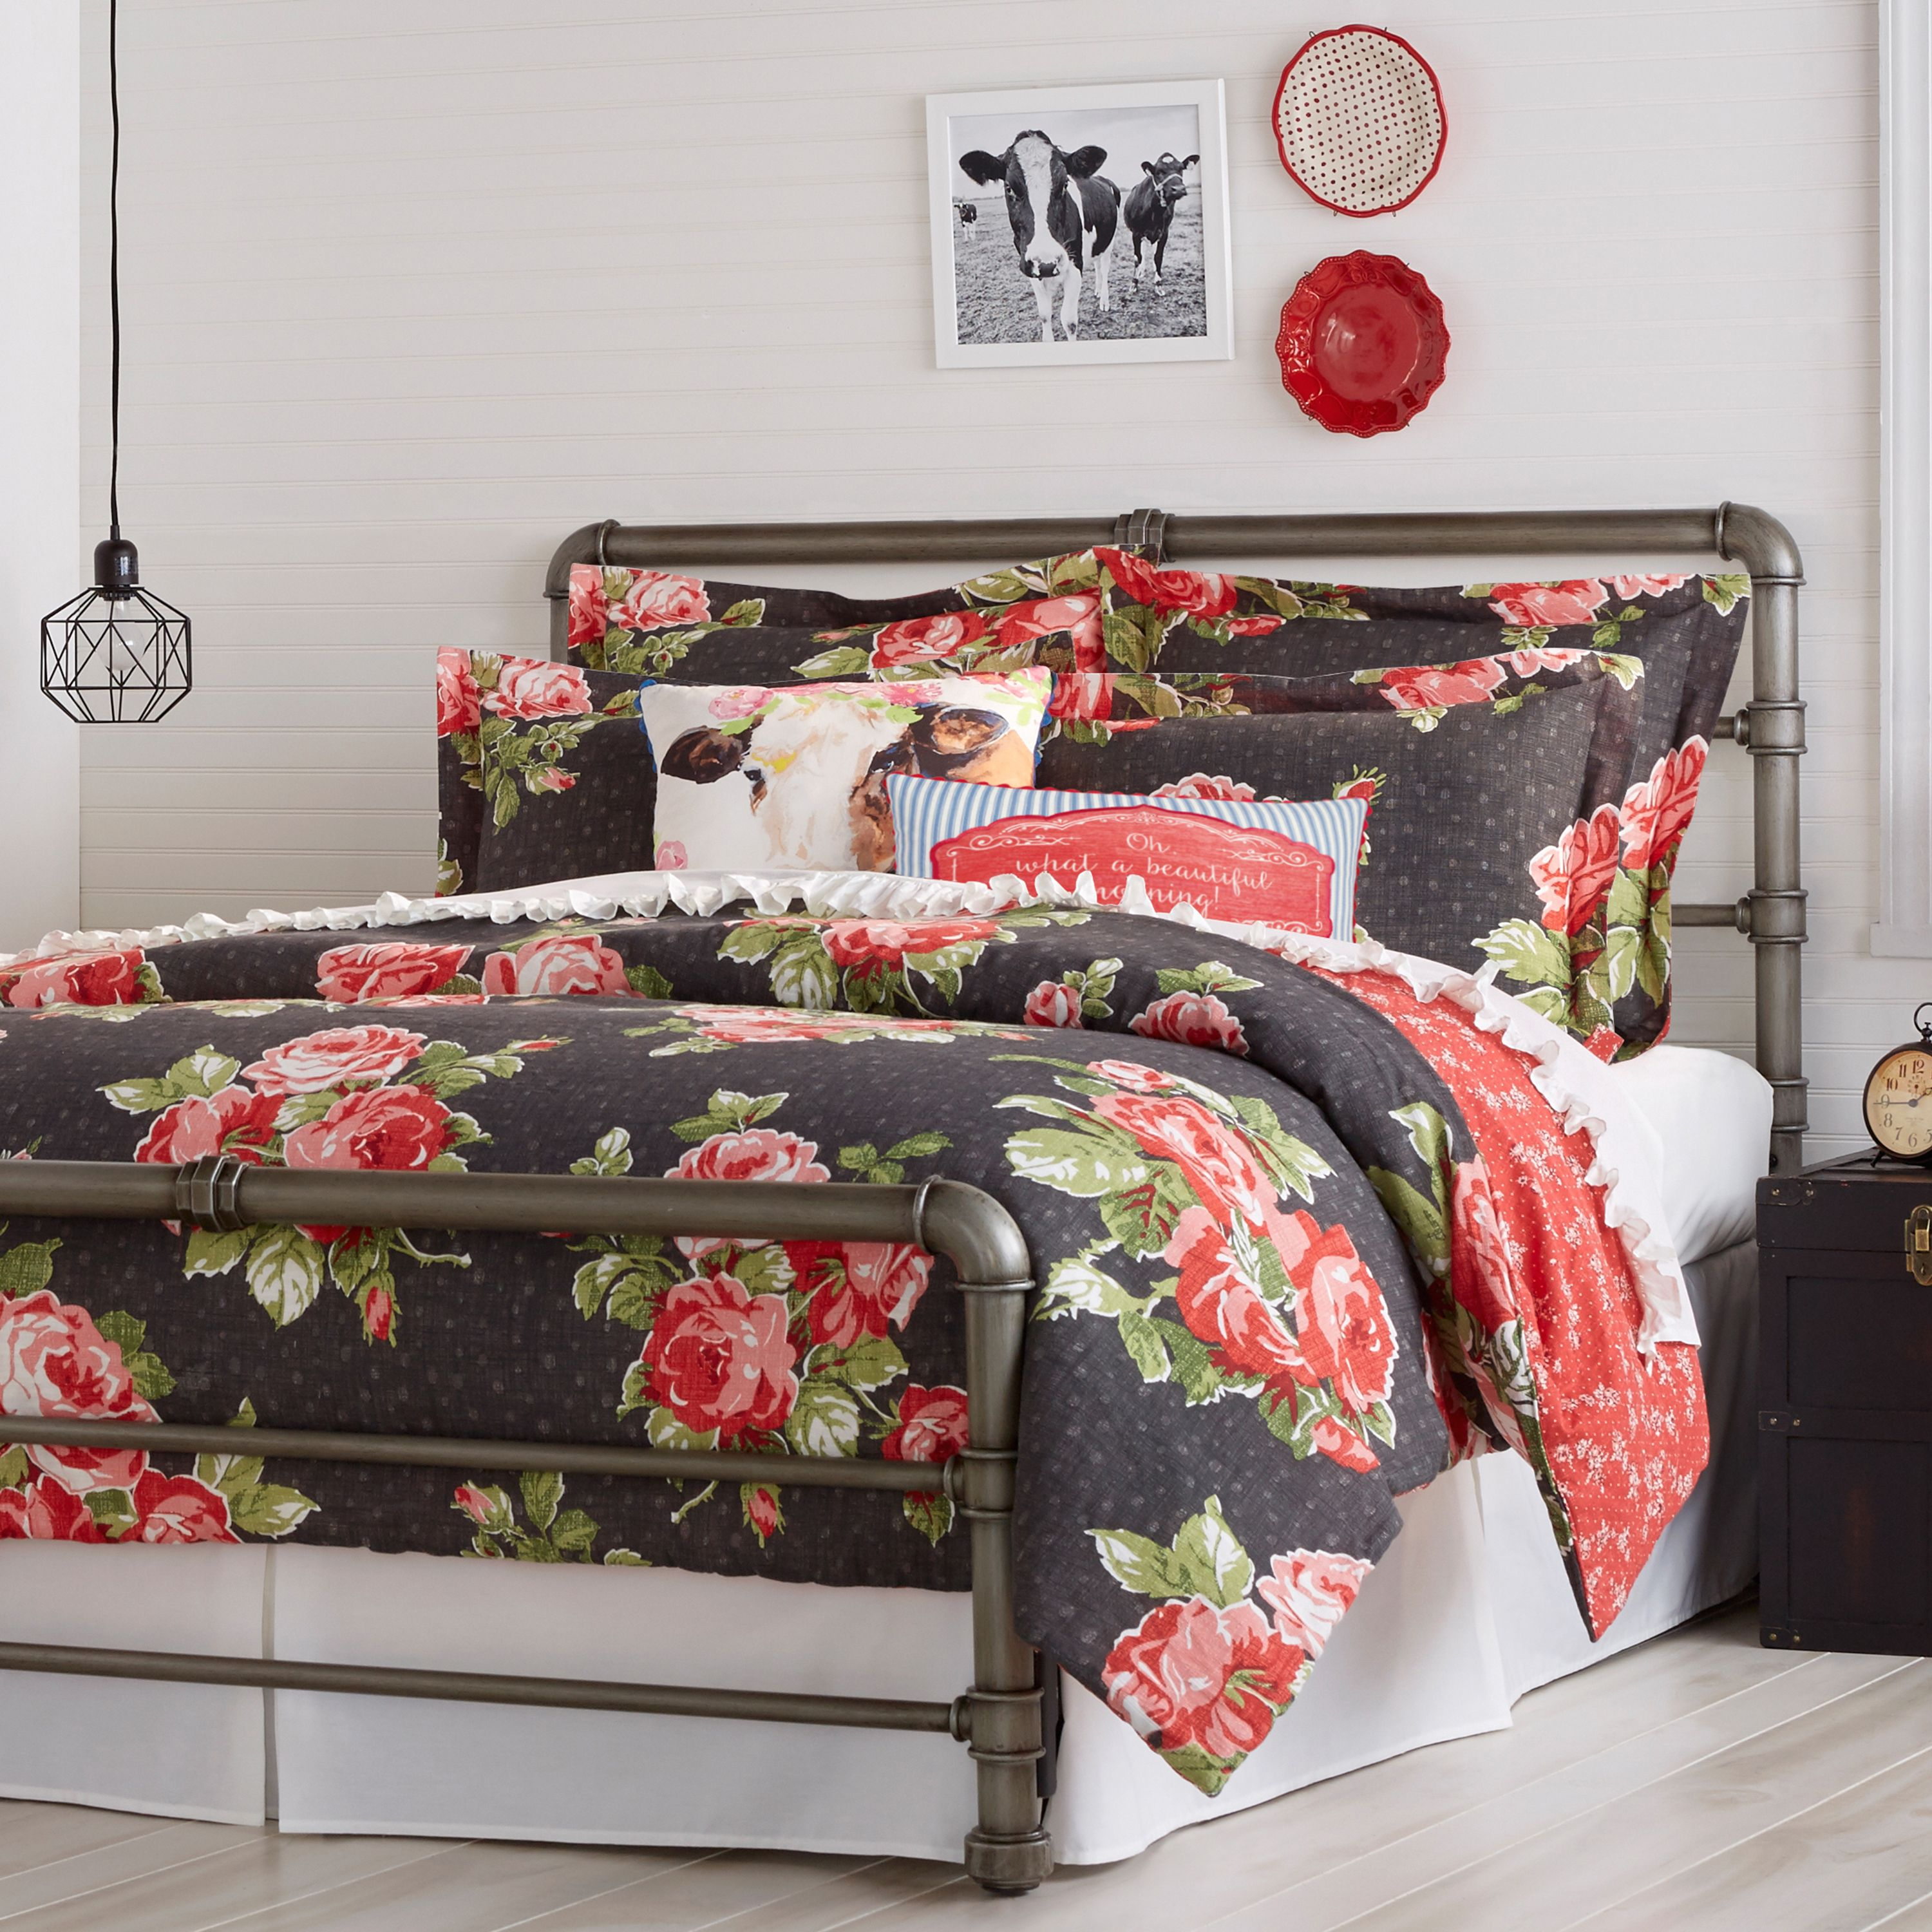 Pioneer Woman Rose Garden Duvet Cover, Grey